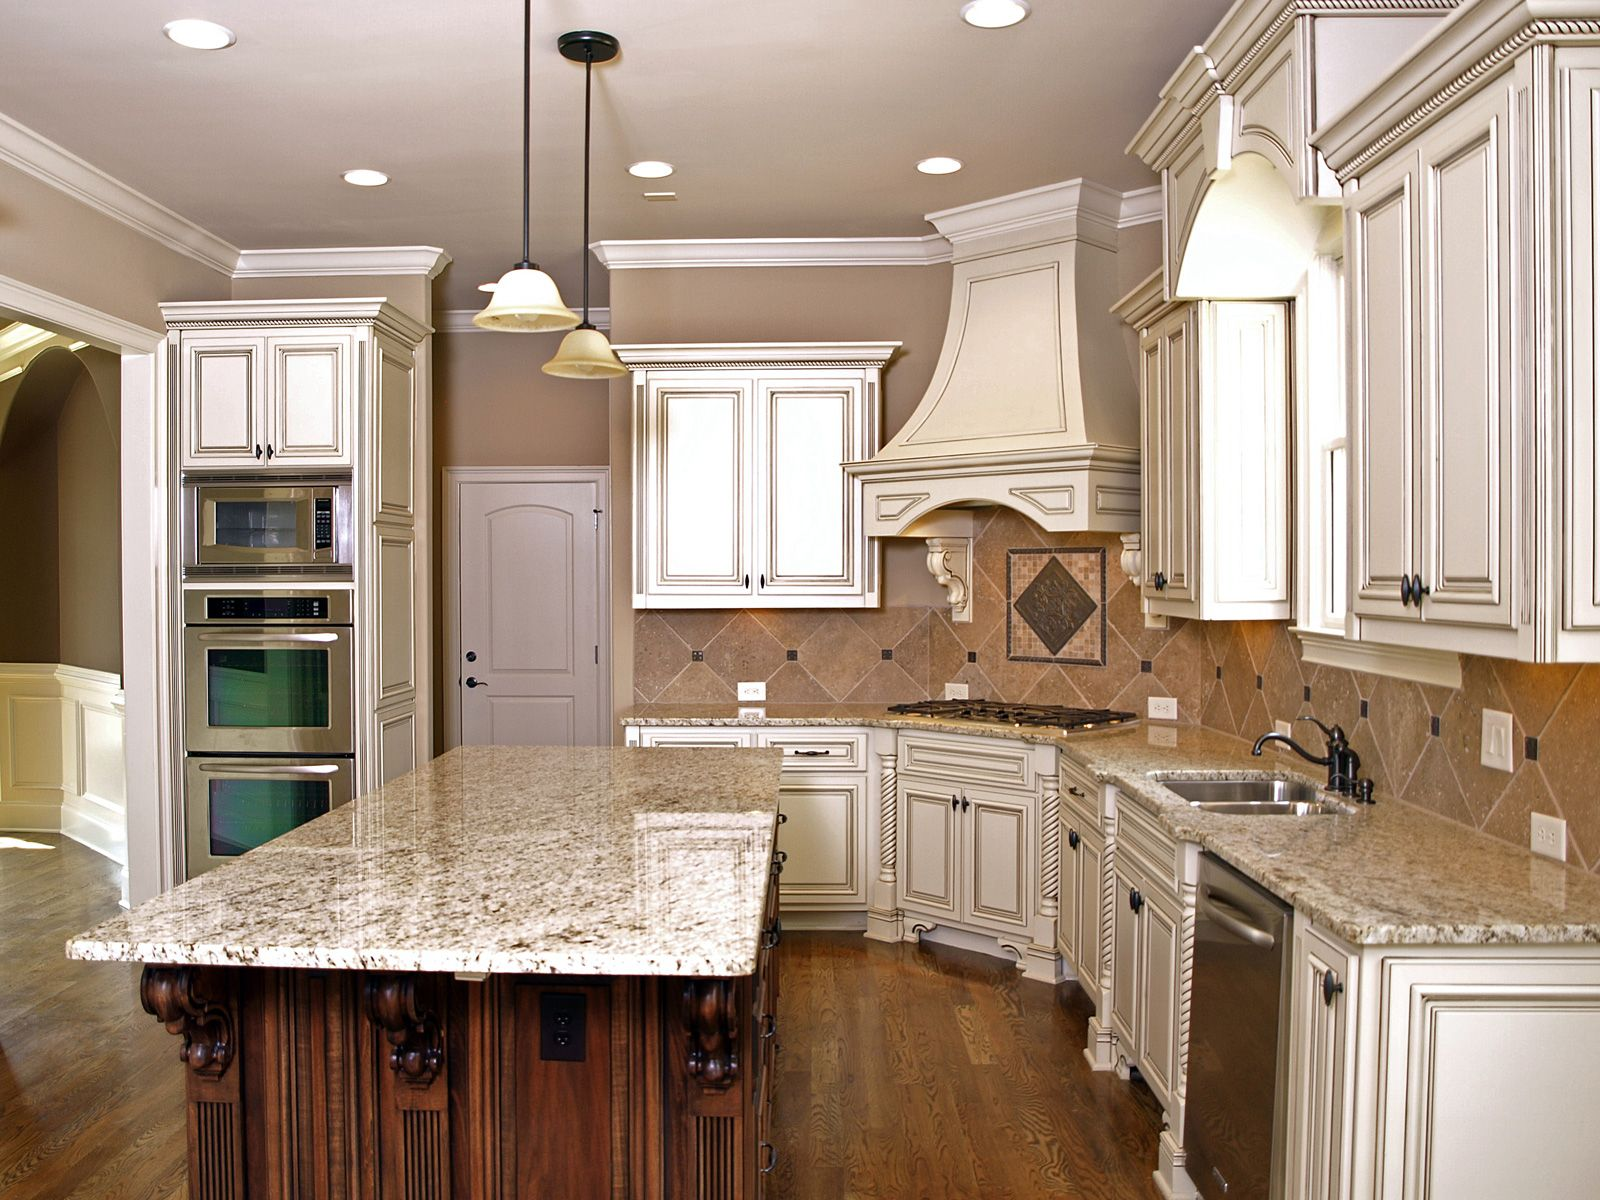 Picture of White Kitchen Cabinets with Granite Countertops ...